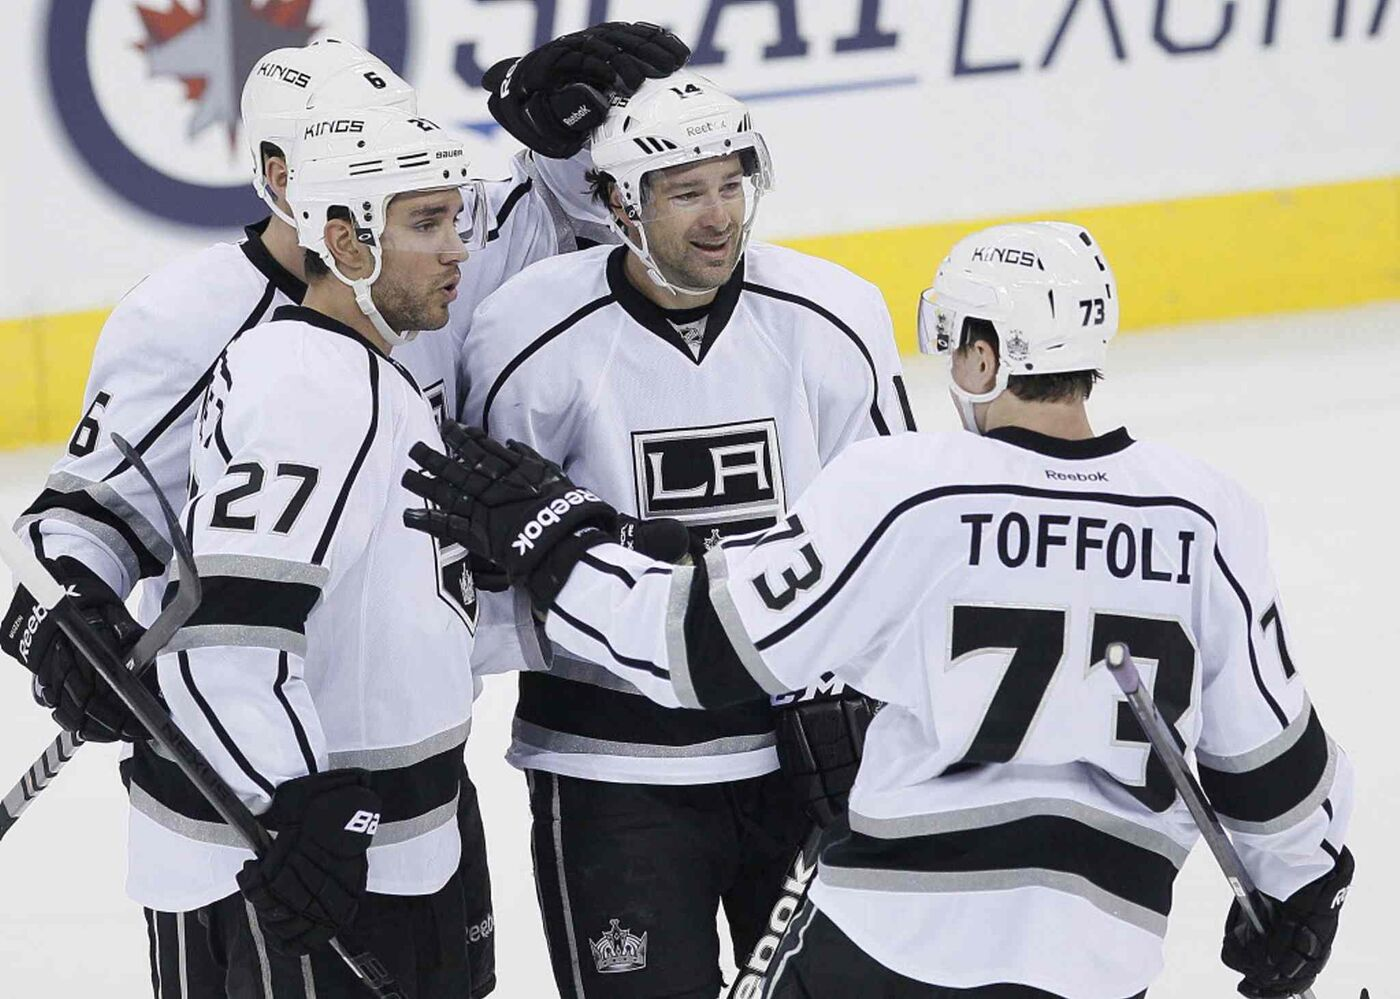 Los Angeles Kings' Jake Muzzin (6), Alec Martinez (27), Justin Williams (14) and Tyler Toffoli (73) celebrate Martinez's goal against the Winnipeg Jets during third period NHL action. (John Woods / The Canadian Press)